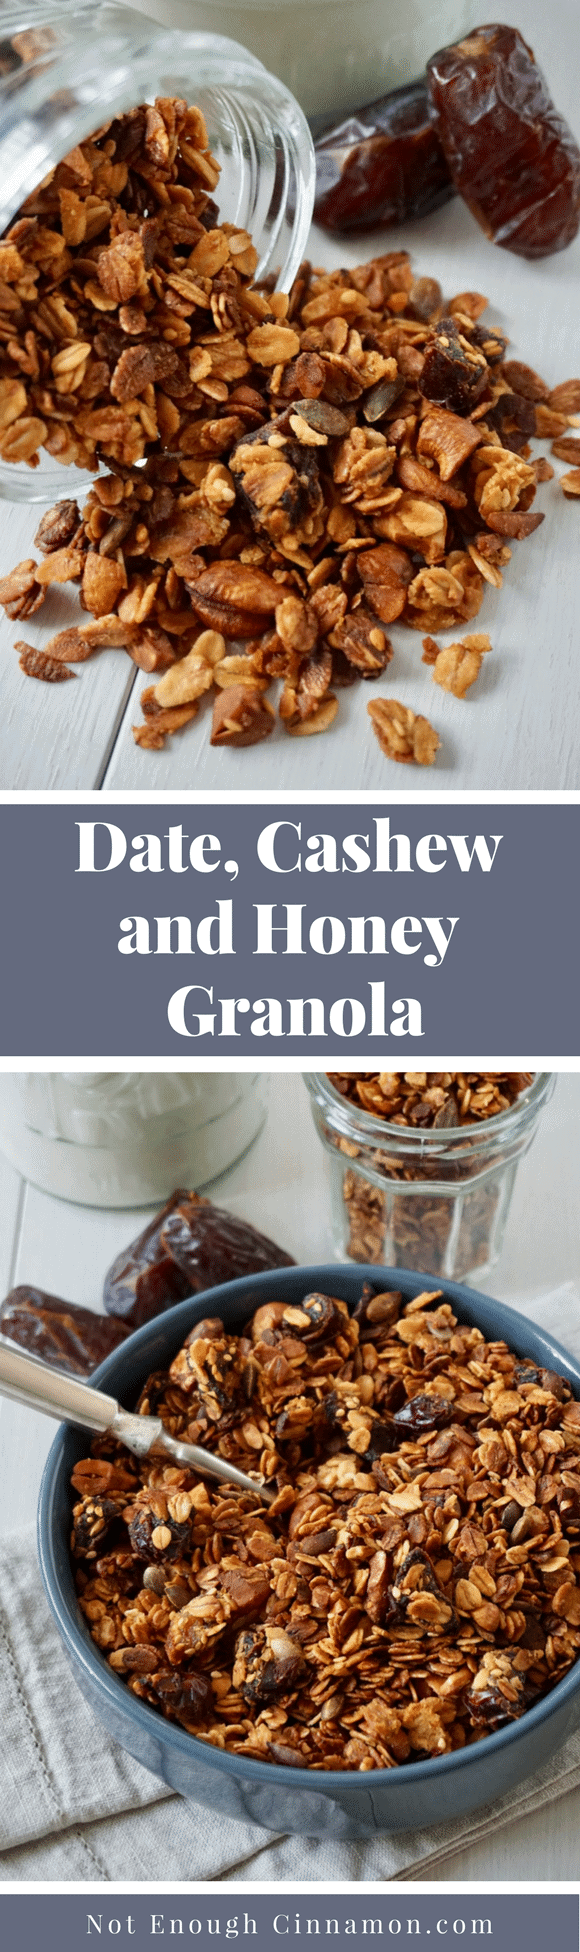 Date, Cashew & Honey Granola | An easy baked honey granola recipe featuring Medjool dates and cashews. The perfect sweet homemade treat for breakfast - delicious on its own, sprinkled over some Greek yogurt, or used as a smoothie topping! #granolarecipes, #cleaneating, #granola, #honeygranola, #naturallysweetened, #healthybreakfast